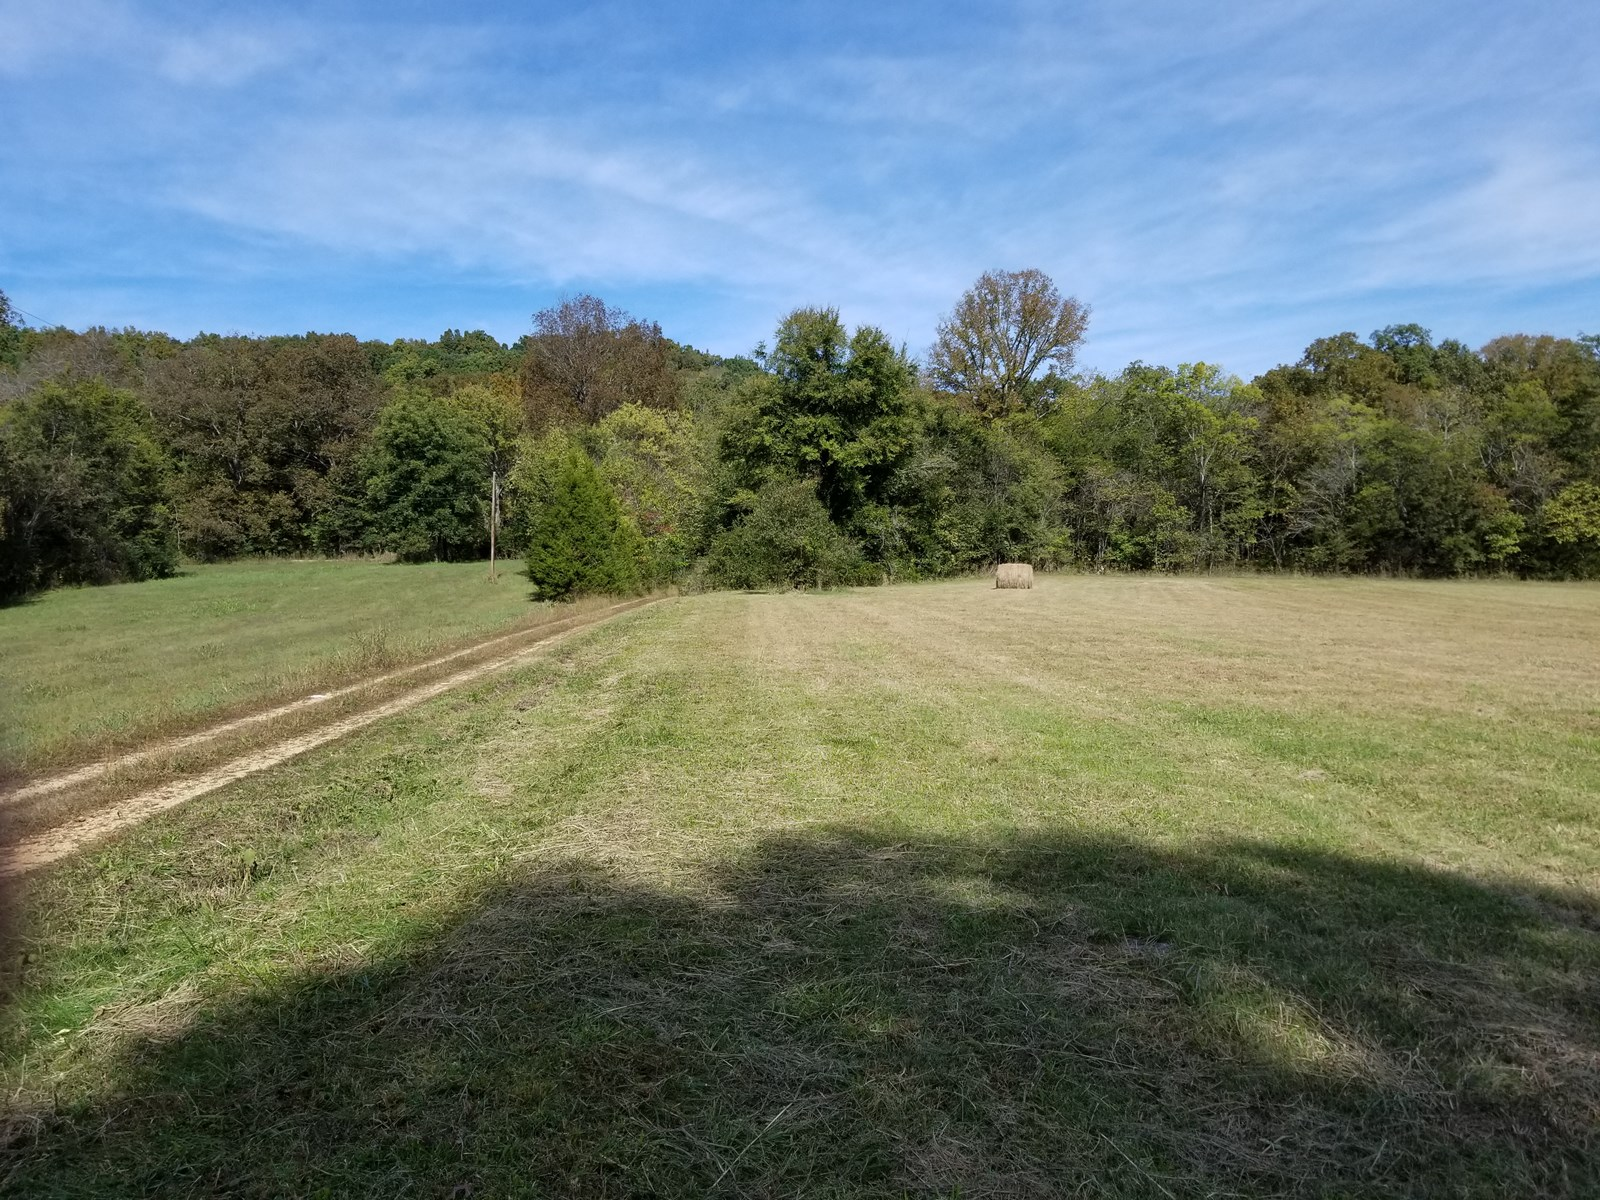 Vacant Land for Sale Fields Timberland Creek Utilities